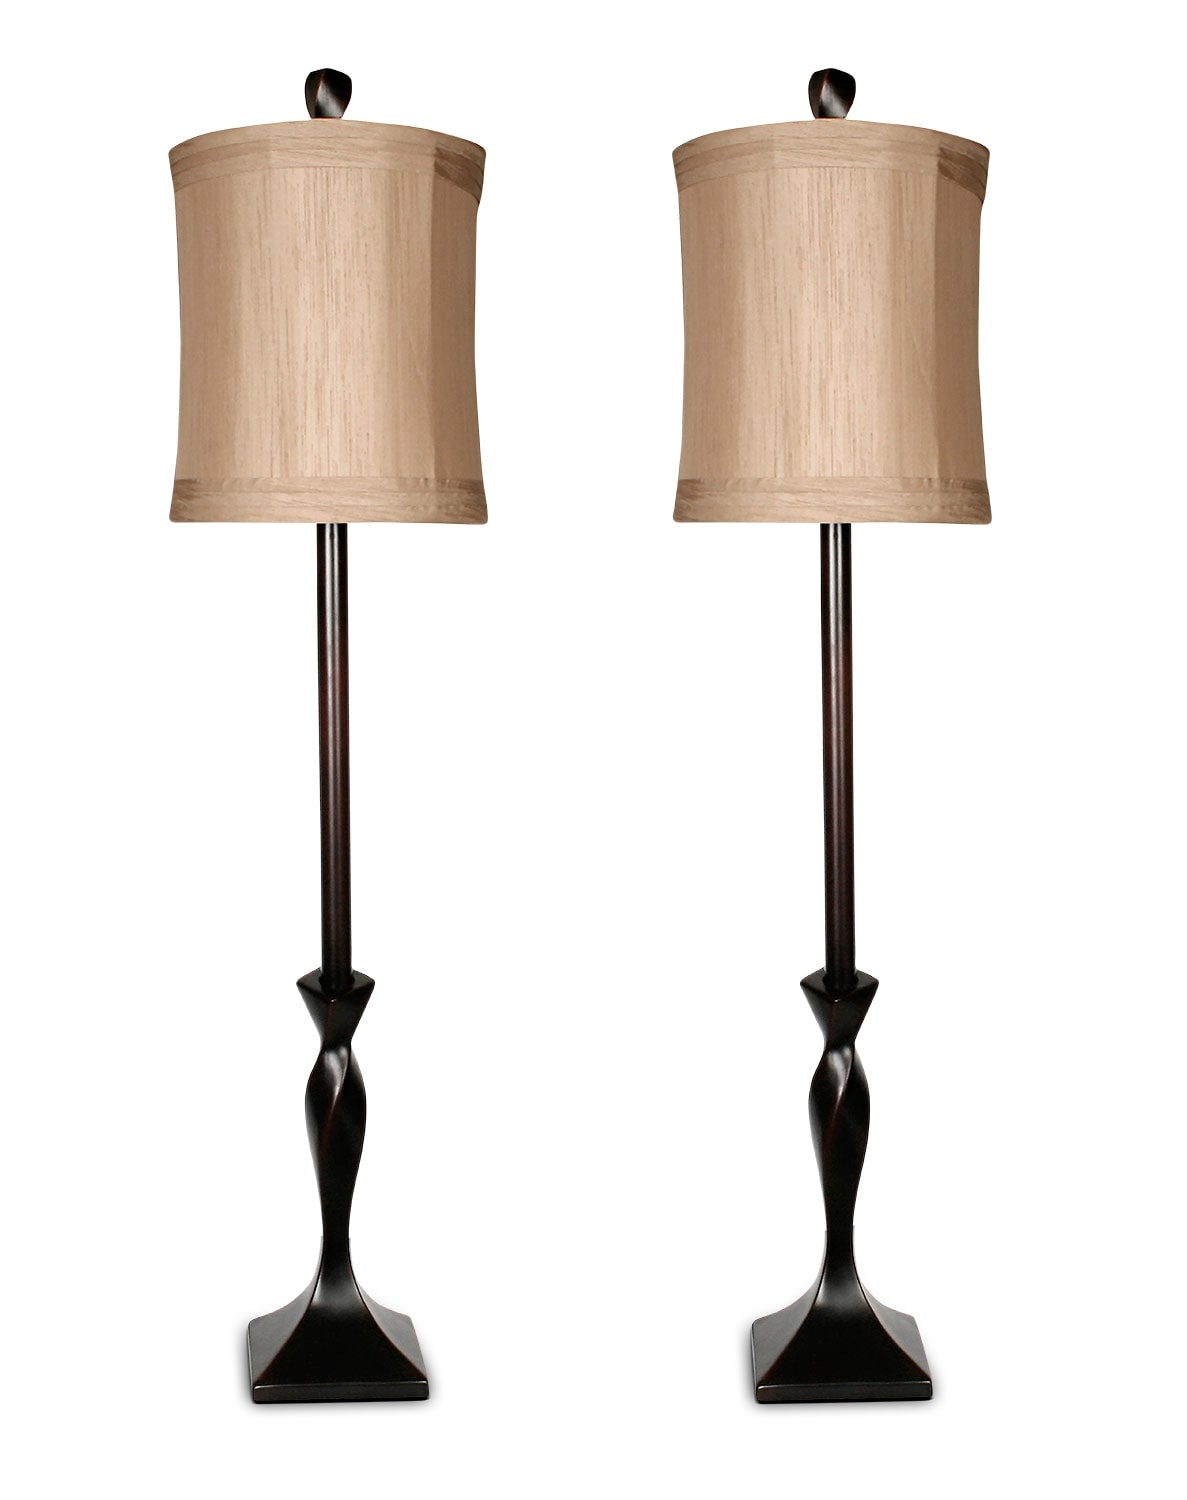 Home Accessories - Coffee Bean 2-Piece Table Lamp Set